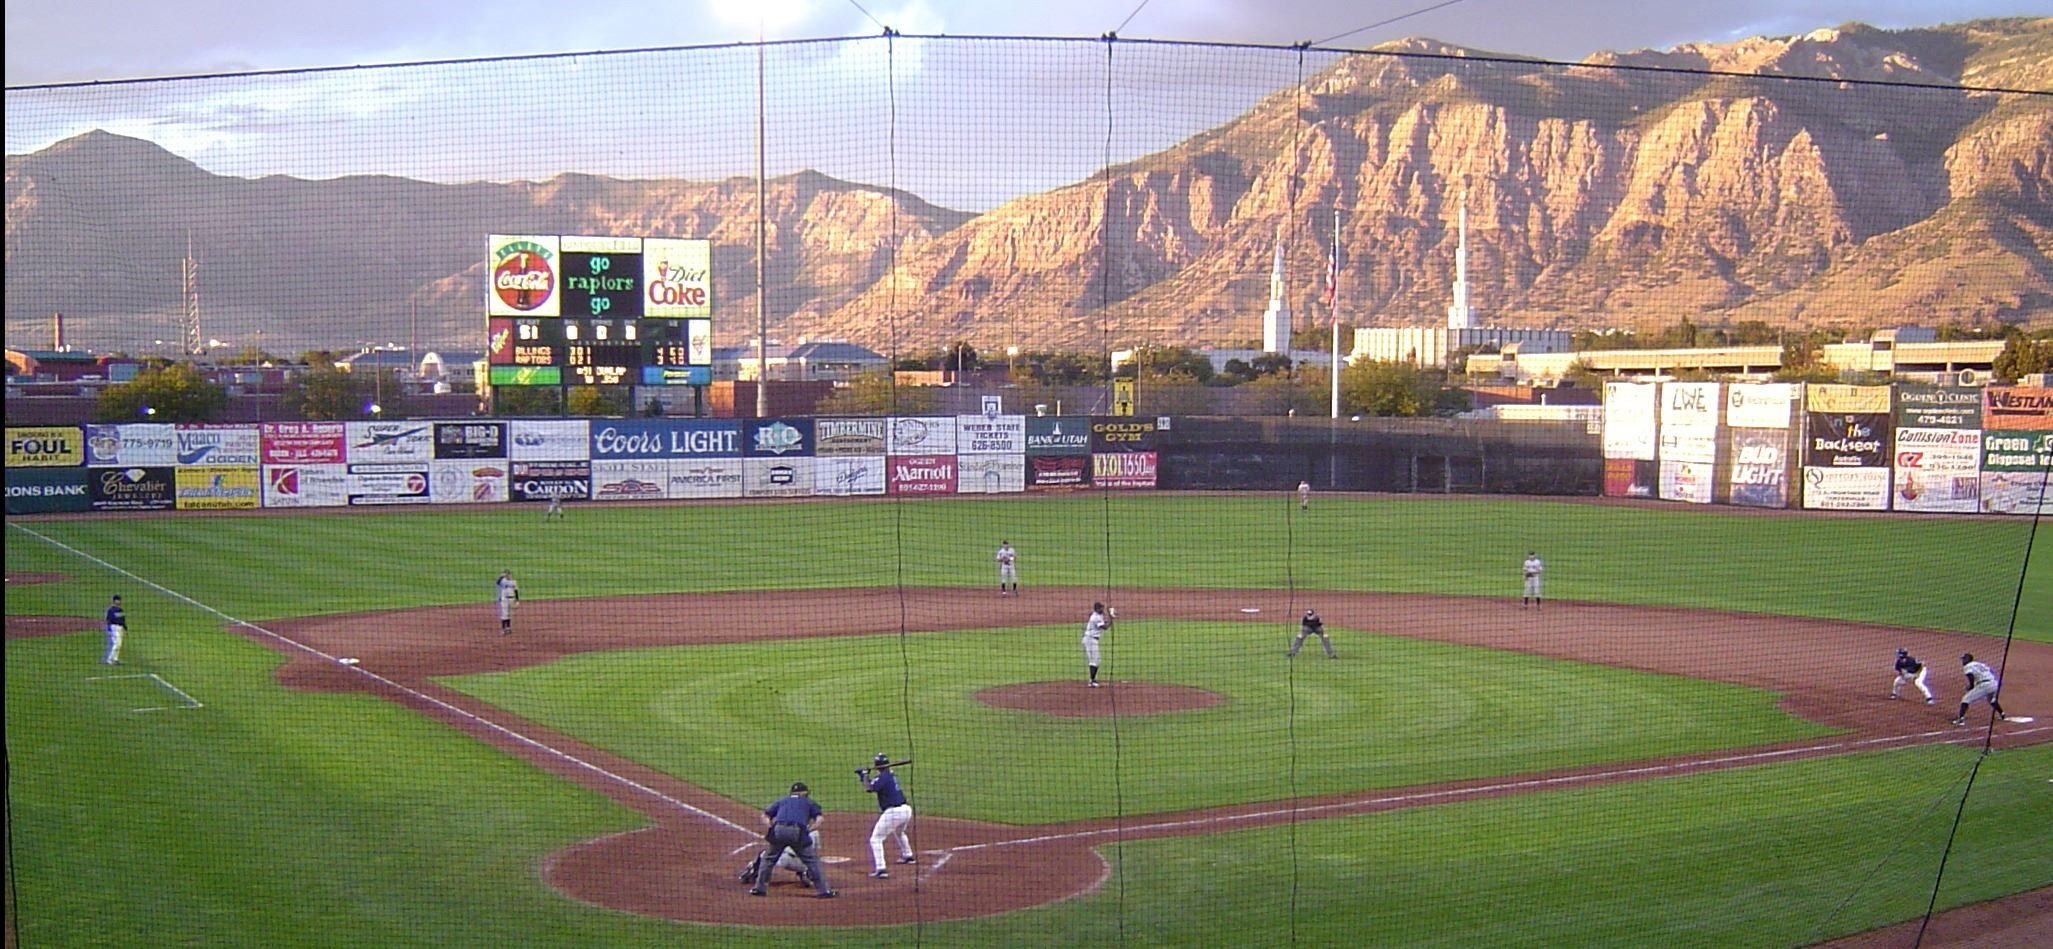 Lindquist Field (2)